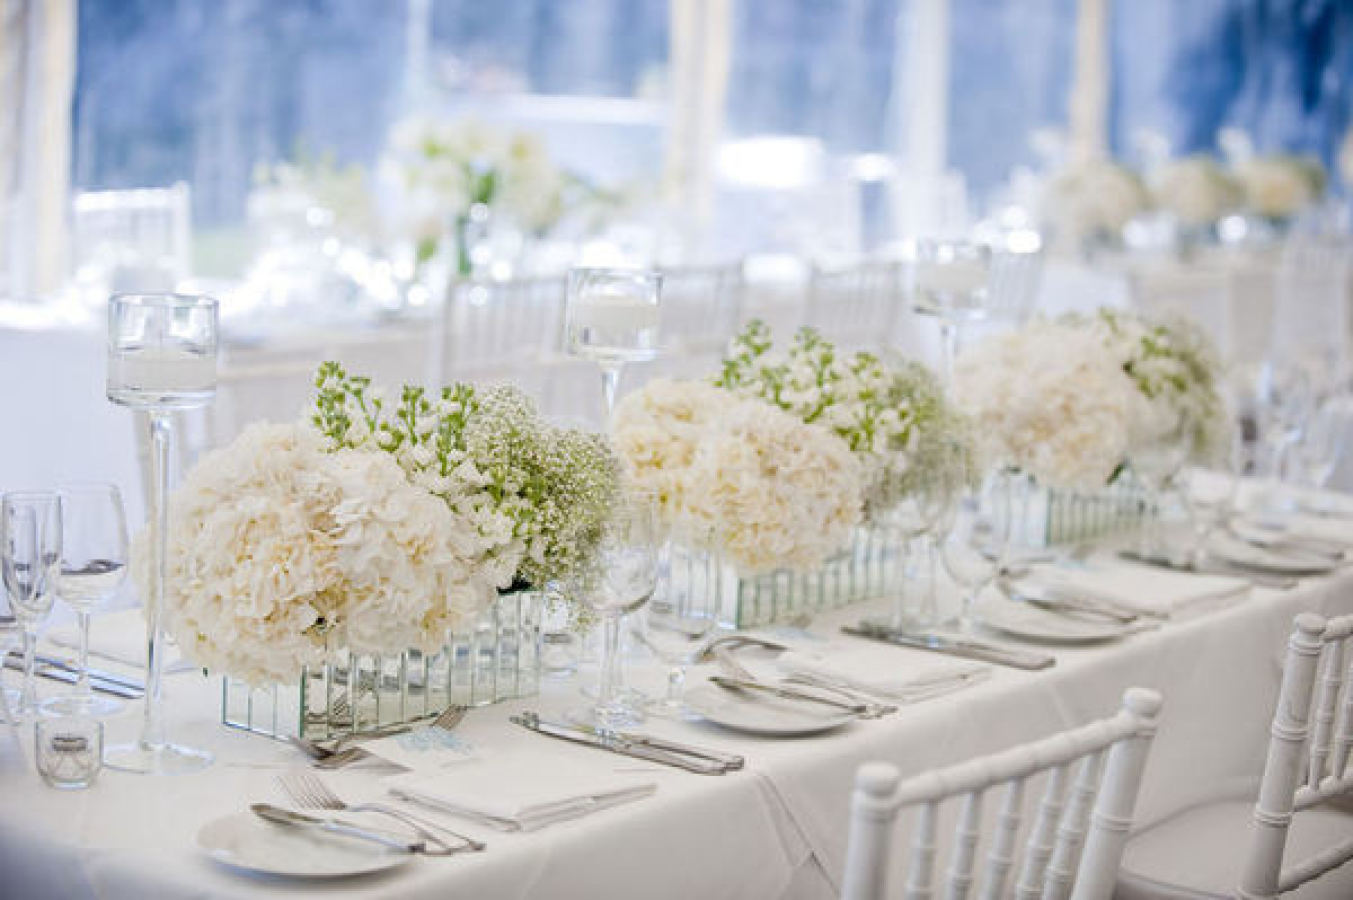 12 Stunning Floral Wedding Centerpieces With Great Themes